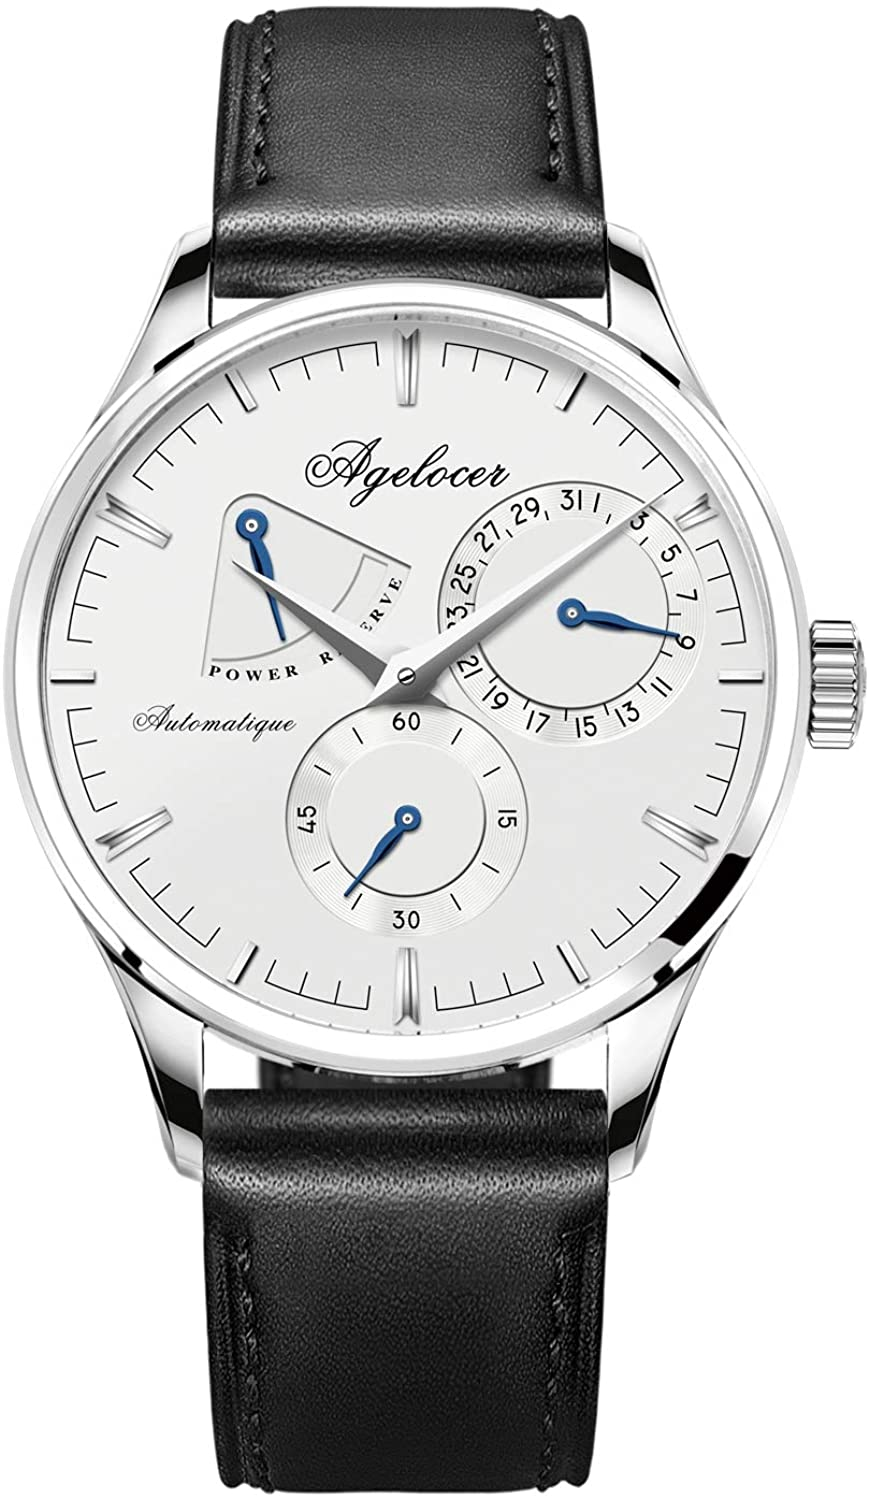 Agelocer Men's Top Brand Luxury Mechanical Automatic Calendar Power Reserve Analog Watch